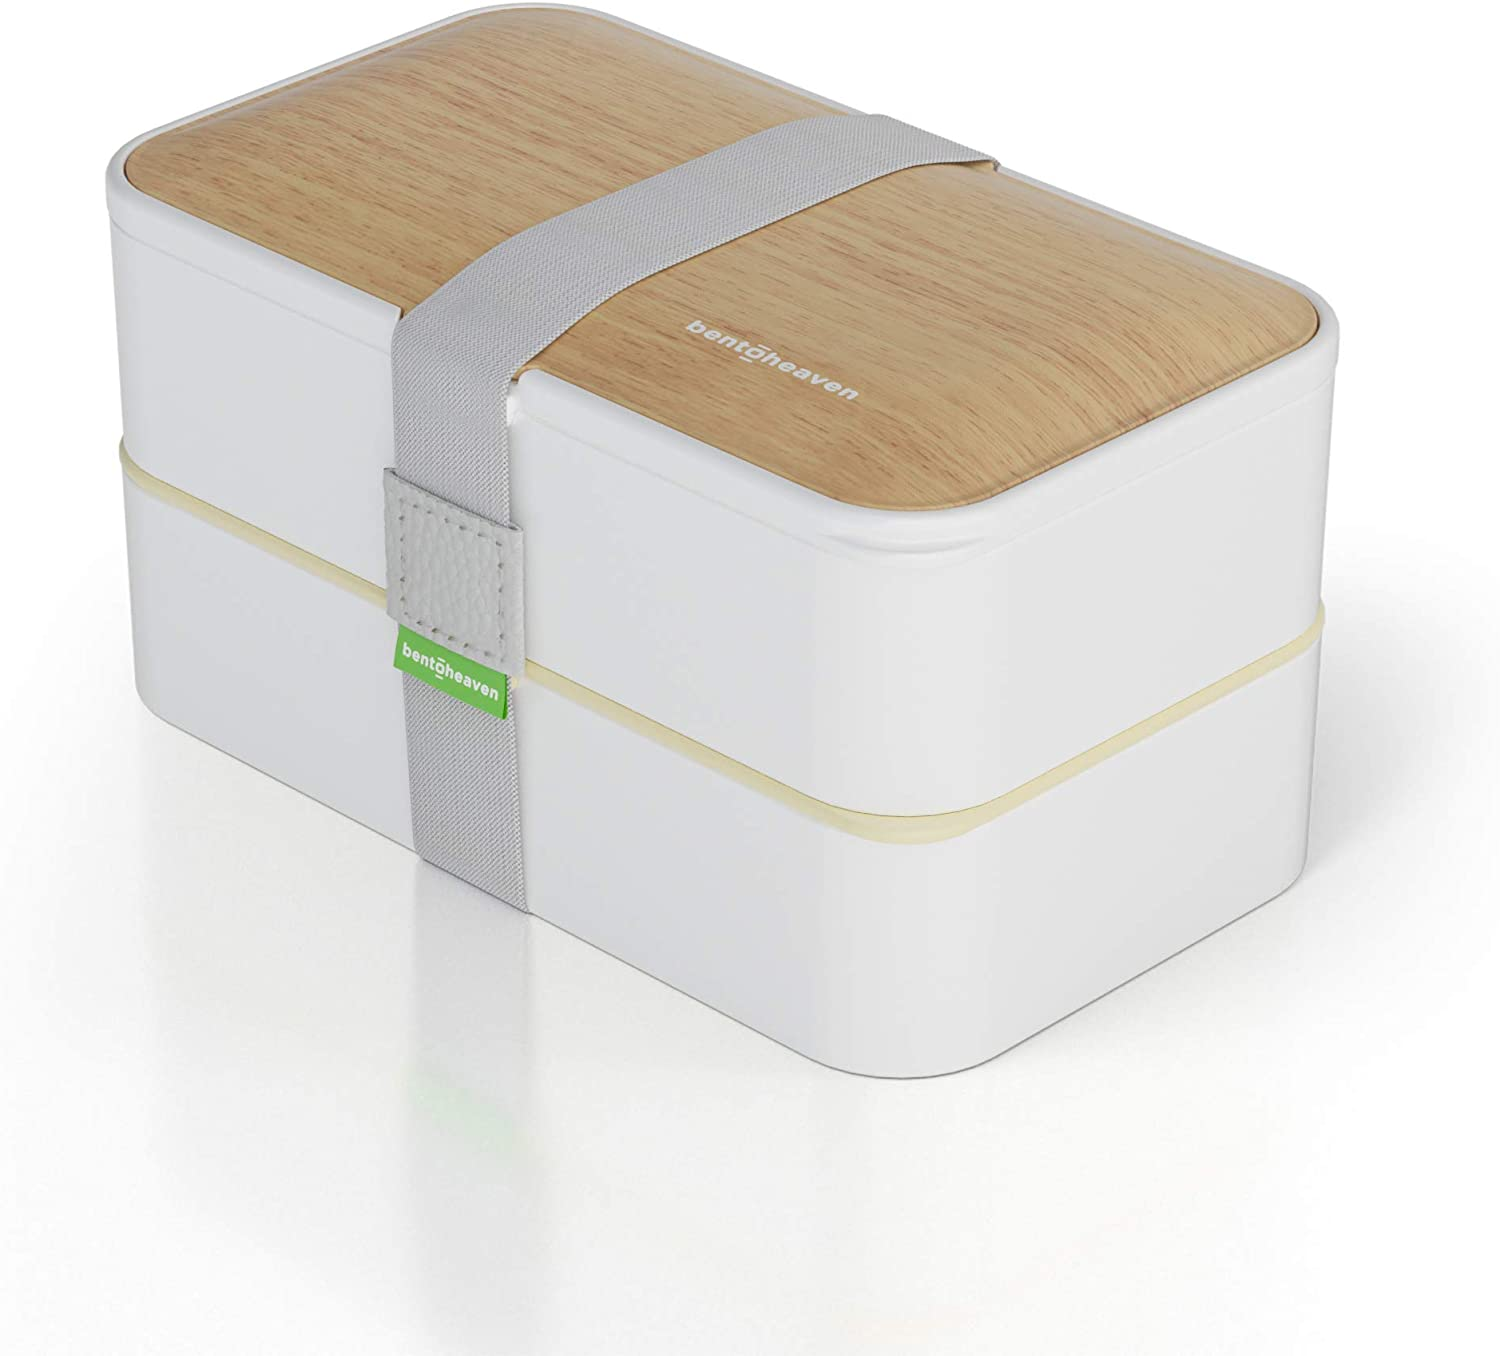 Bento Box for Adults & Kids in Cool Colors - Lunch Bag, Divider, Cutlery, Fun Lunch Notes Included - BPA-free, Leakproof Japanese Lunch Box - Eco-friendly, Hassle-free (Bamboo White)